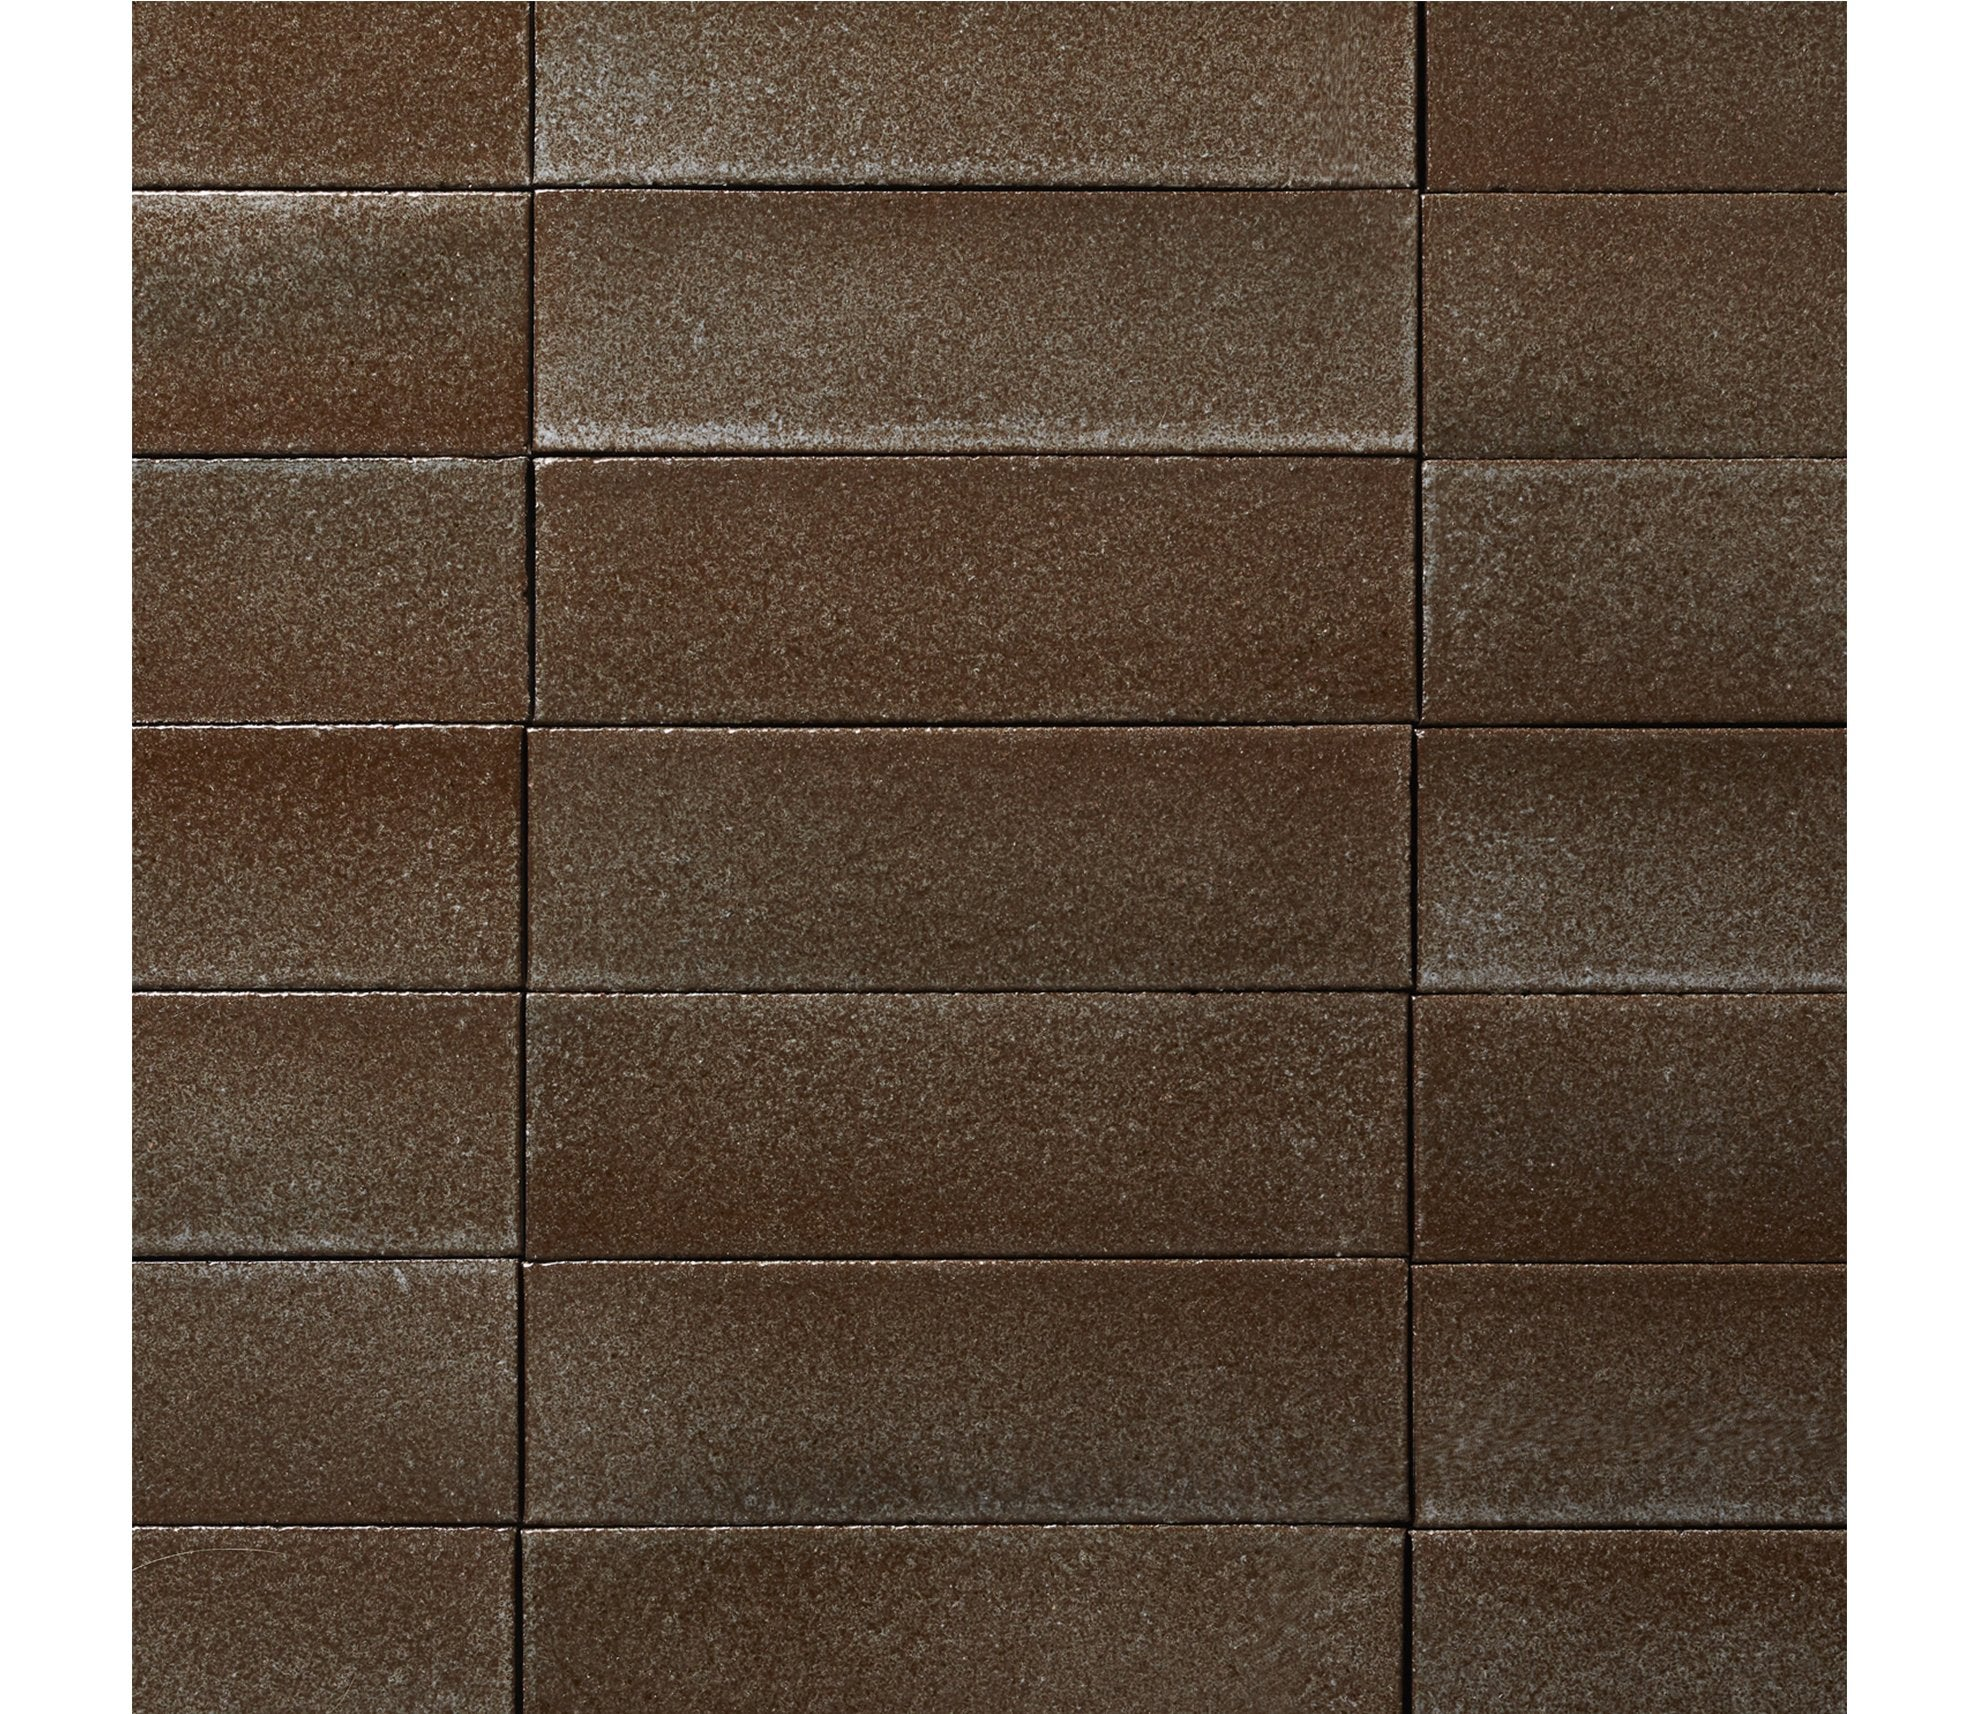 Terra Firma Glazed Bricks Product Image 45